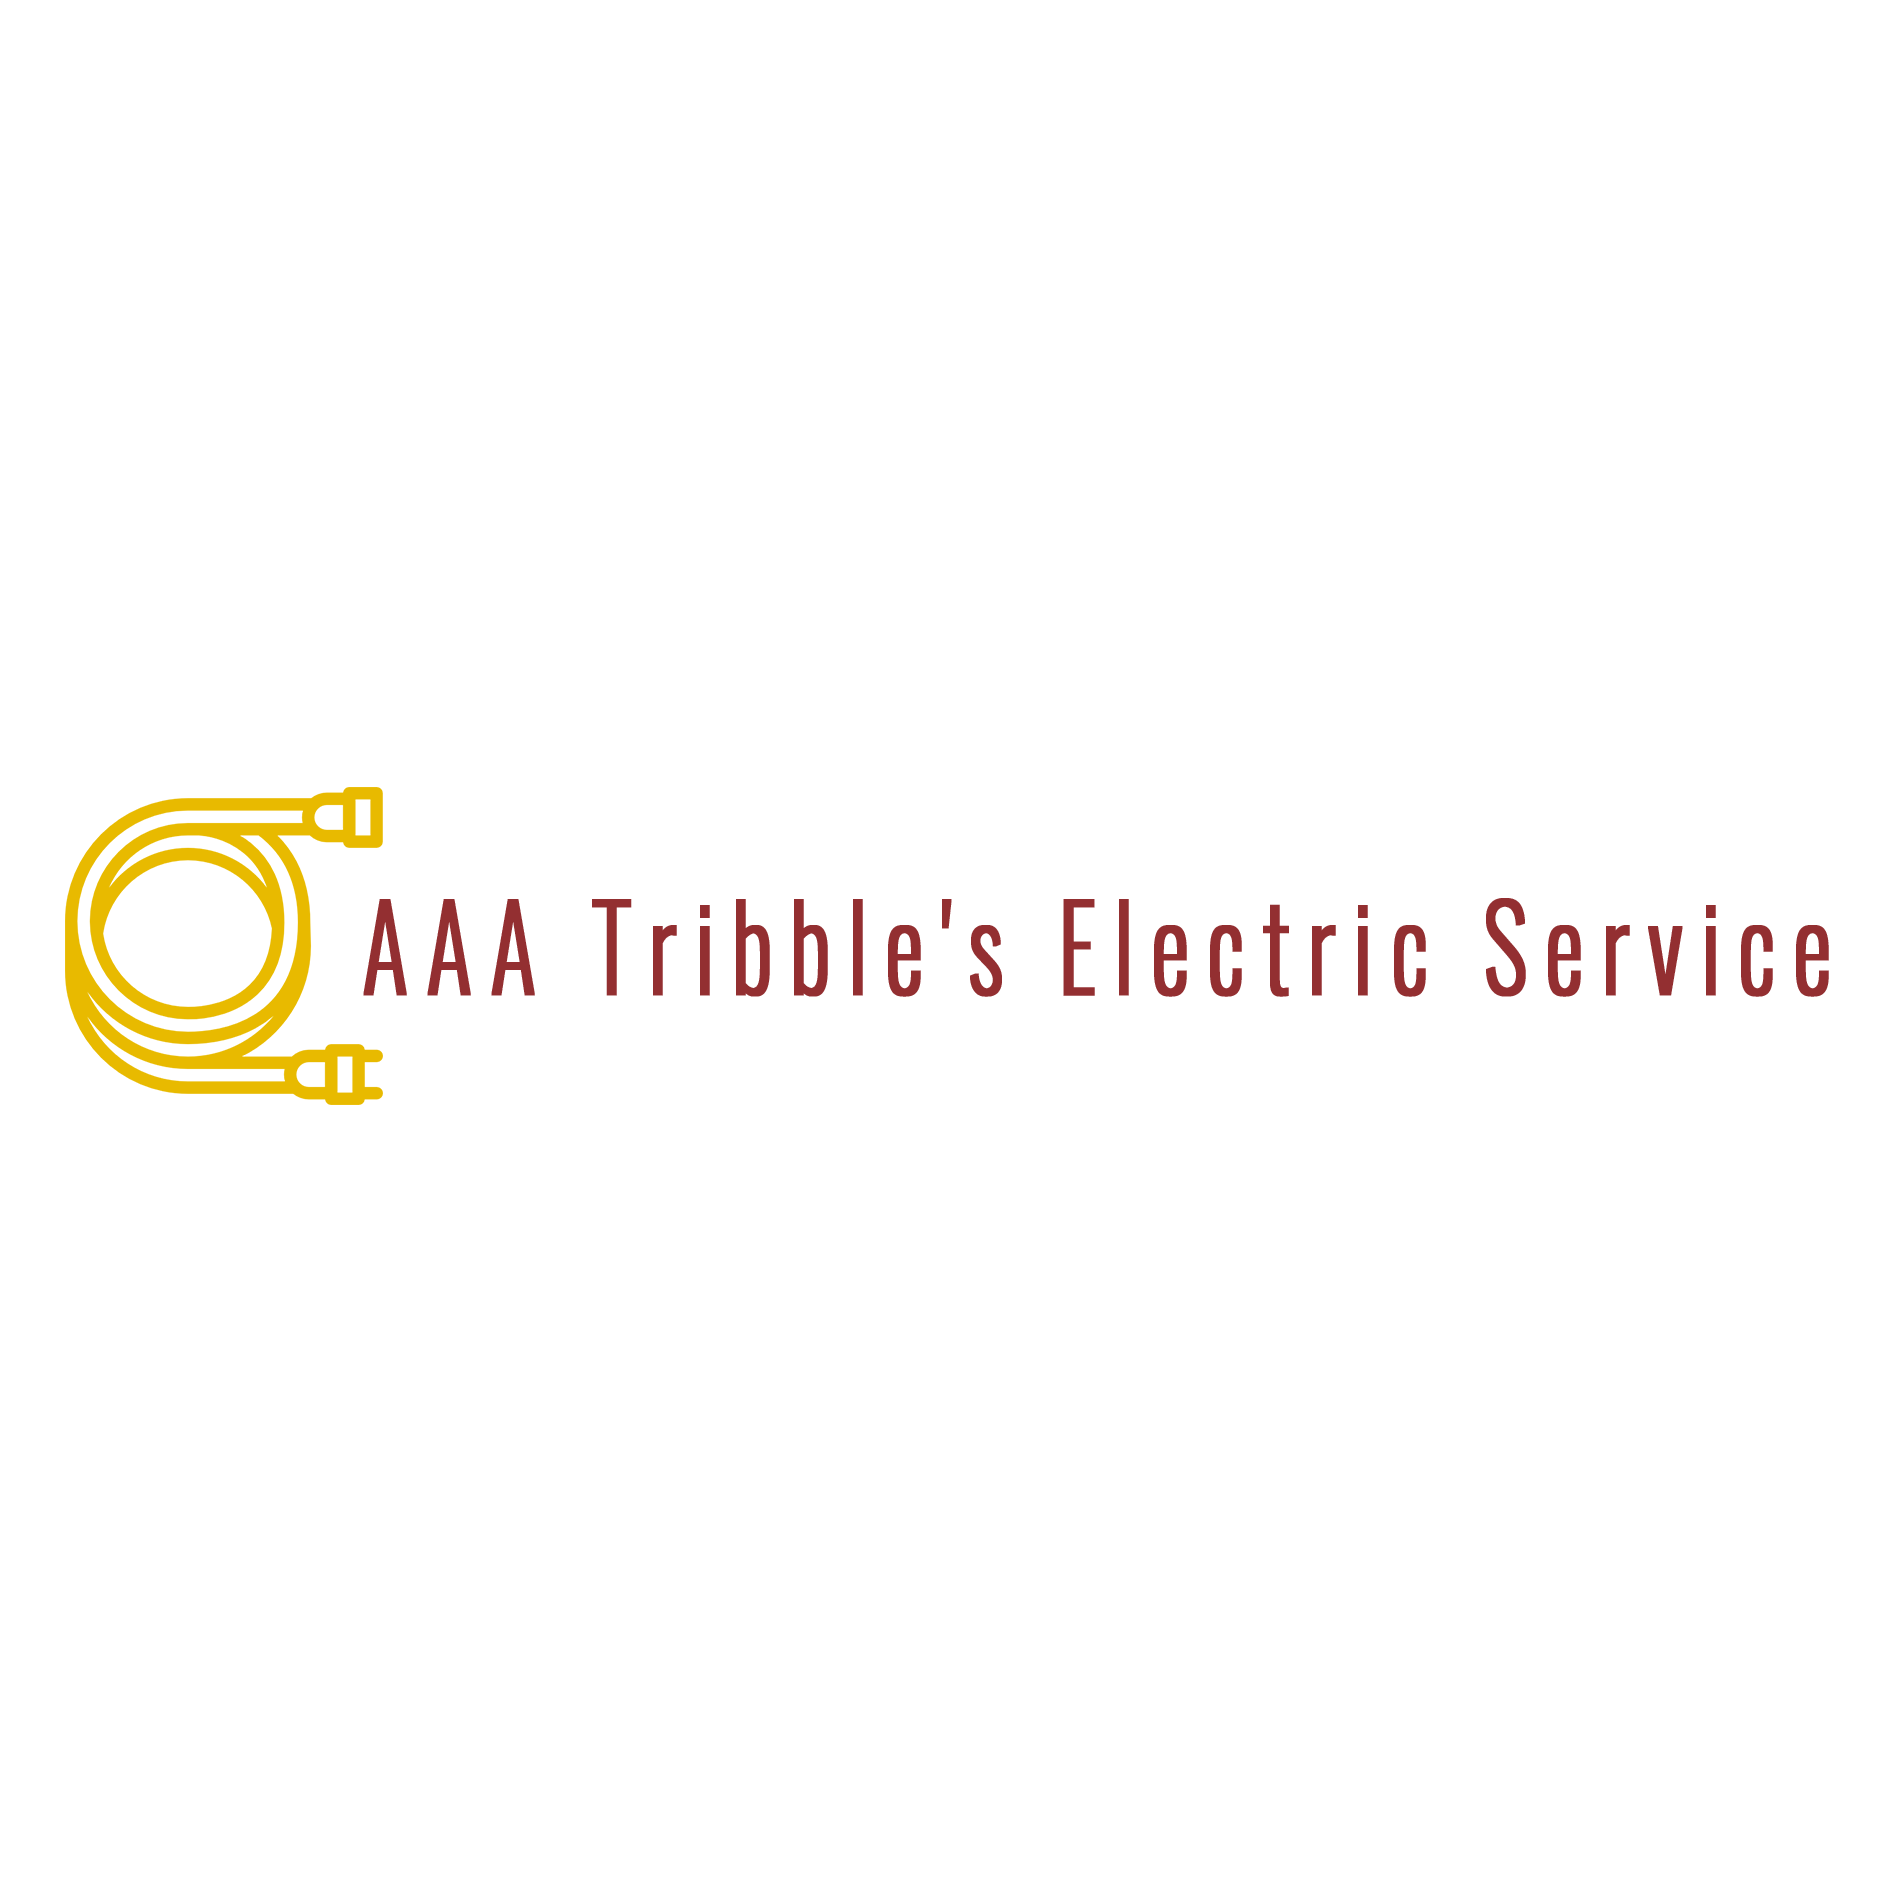 AAA Tribble's Electric Service